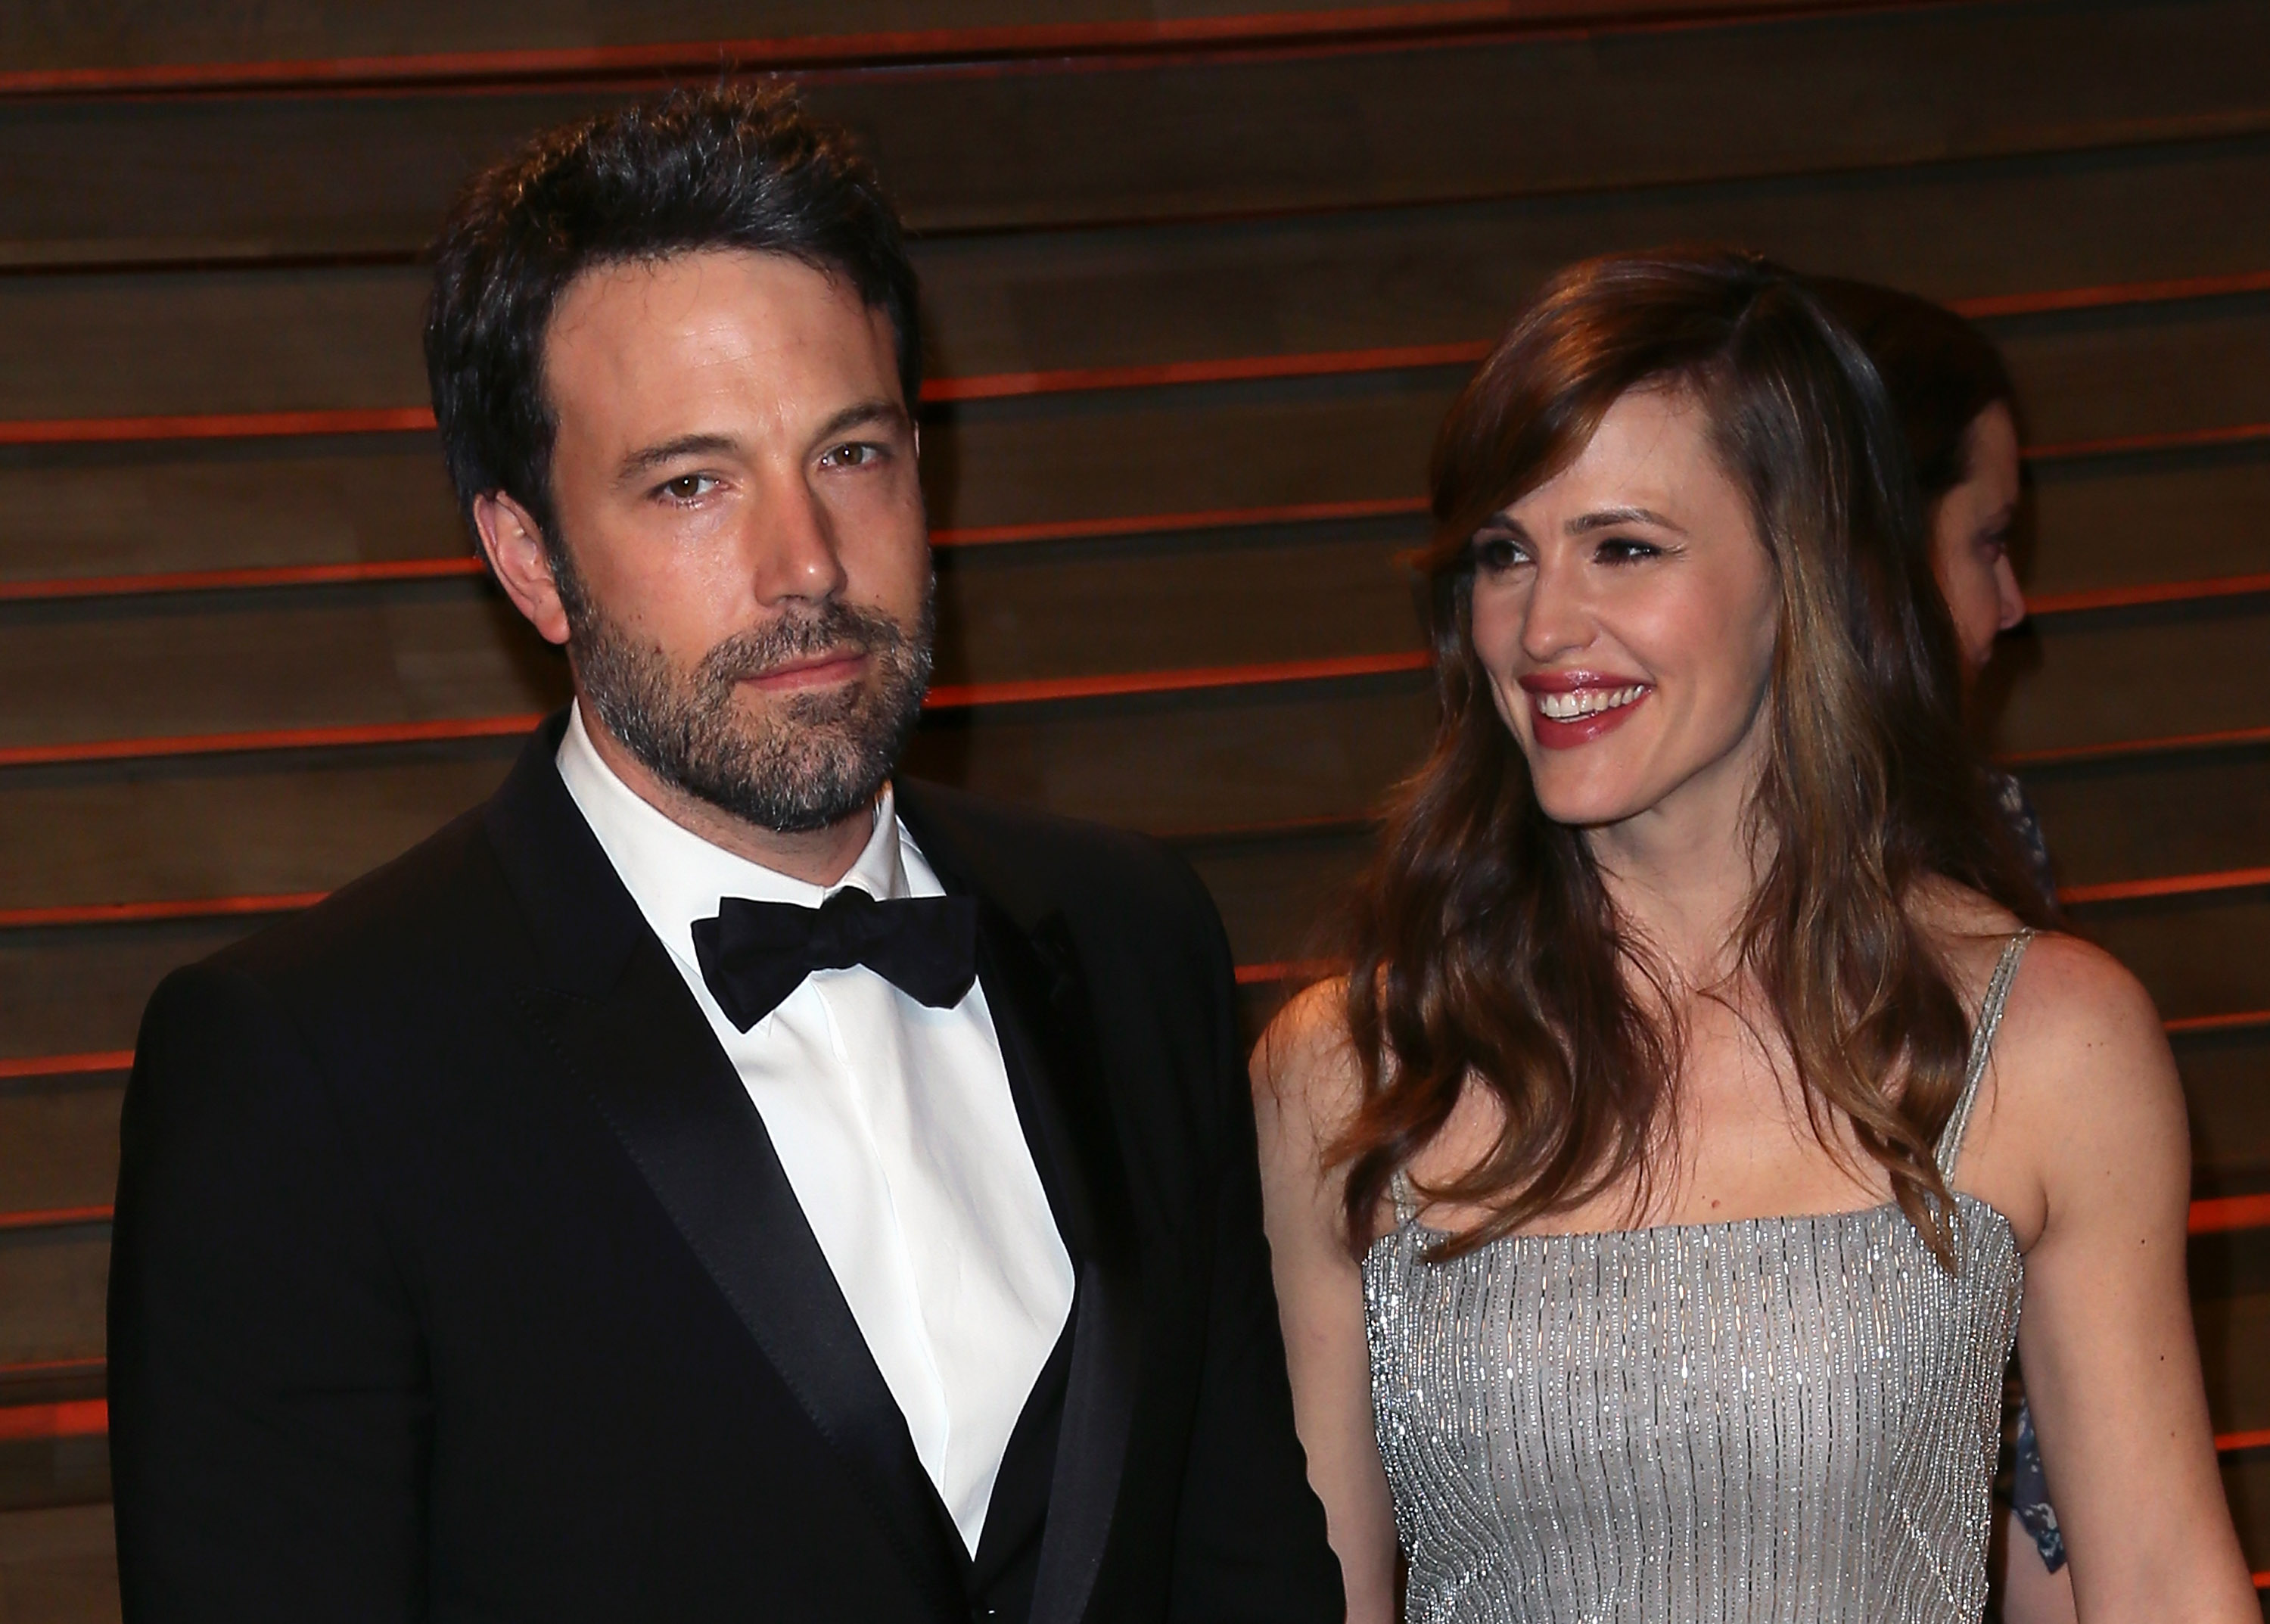 Actor/director Ben Affleck and actress Jennifer Garner attend the 2014 Vanity Fair Oscar Party hosted by Graydon Carter on March 2, 2014 in West Hollywood, California.